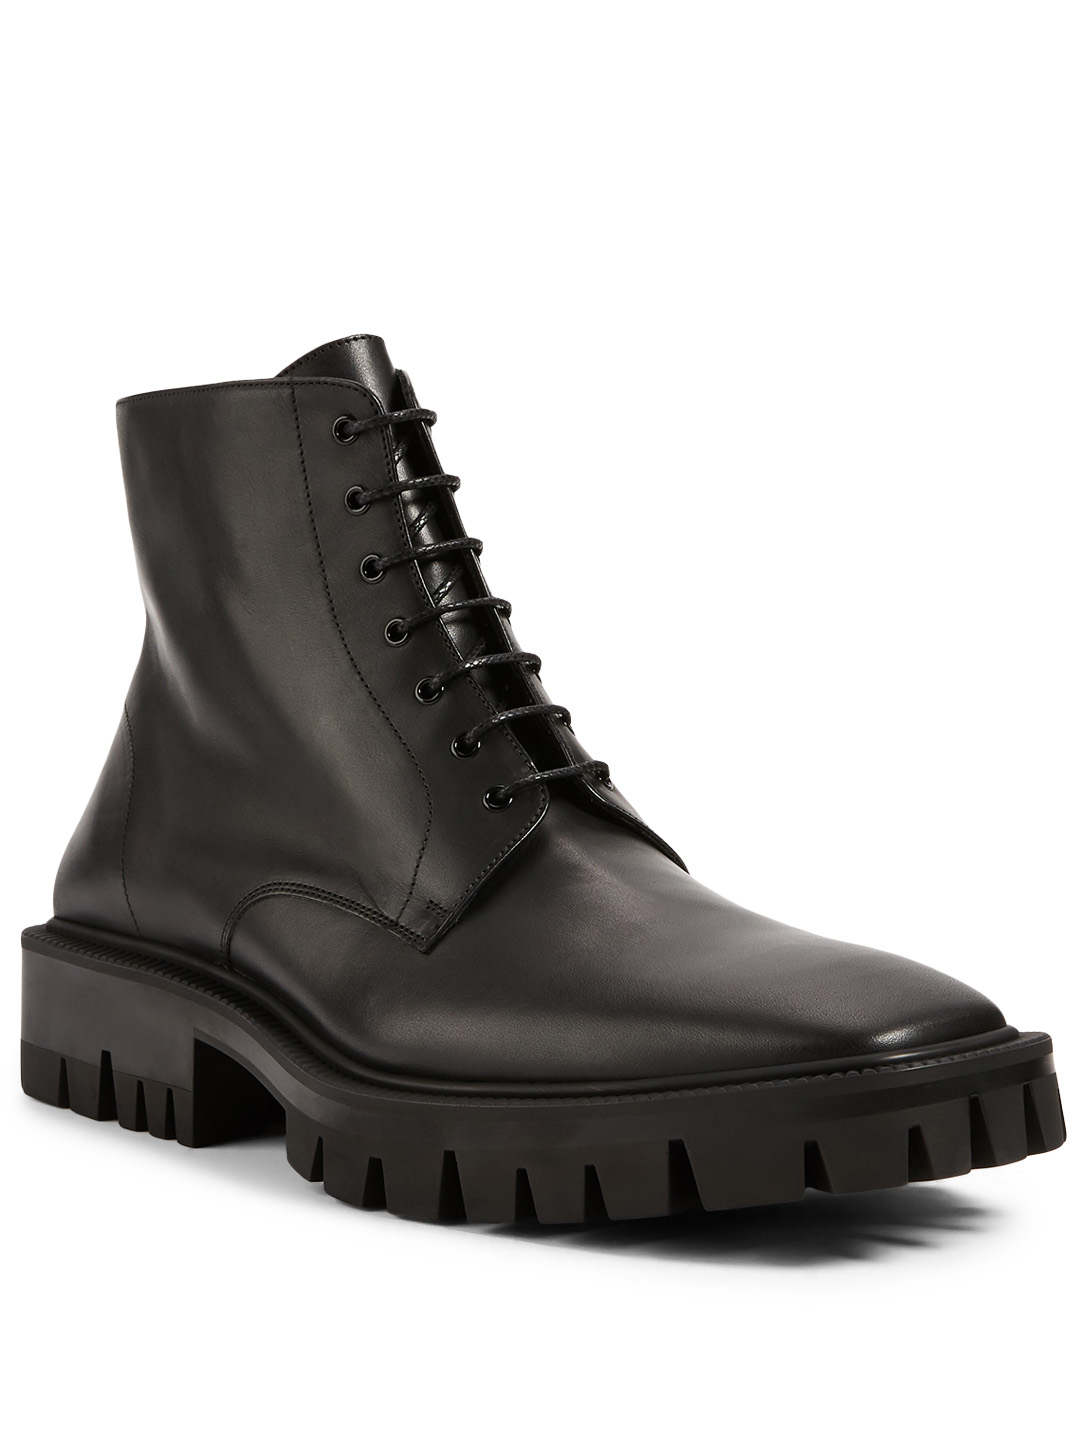 BALENCIAGA Outdoor Rim Leather Lace-Up Ankle Boots Men's Black